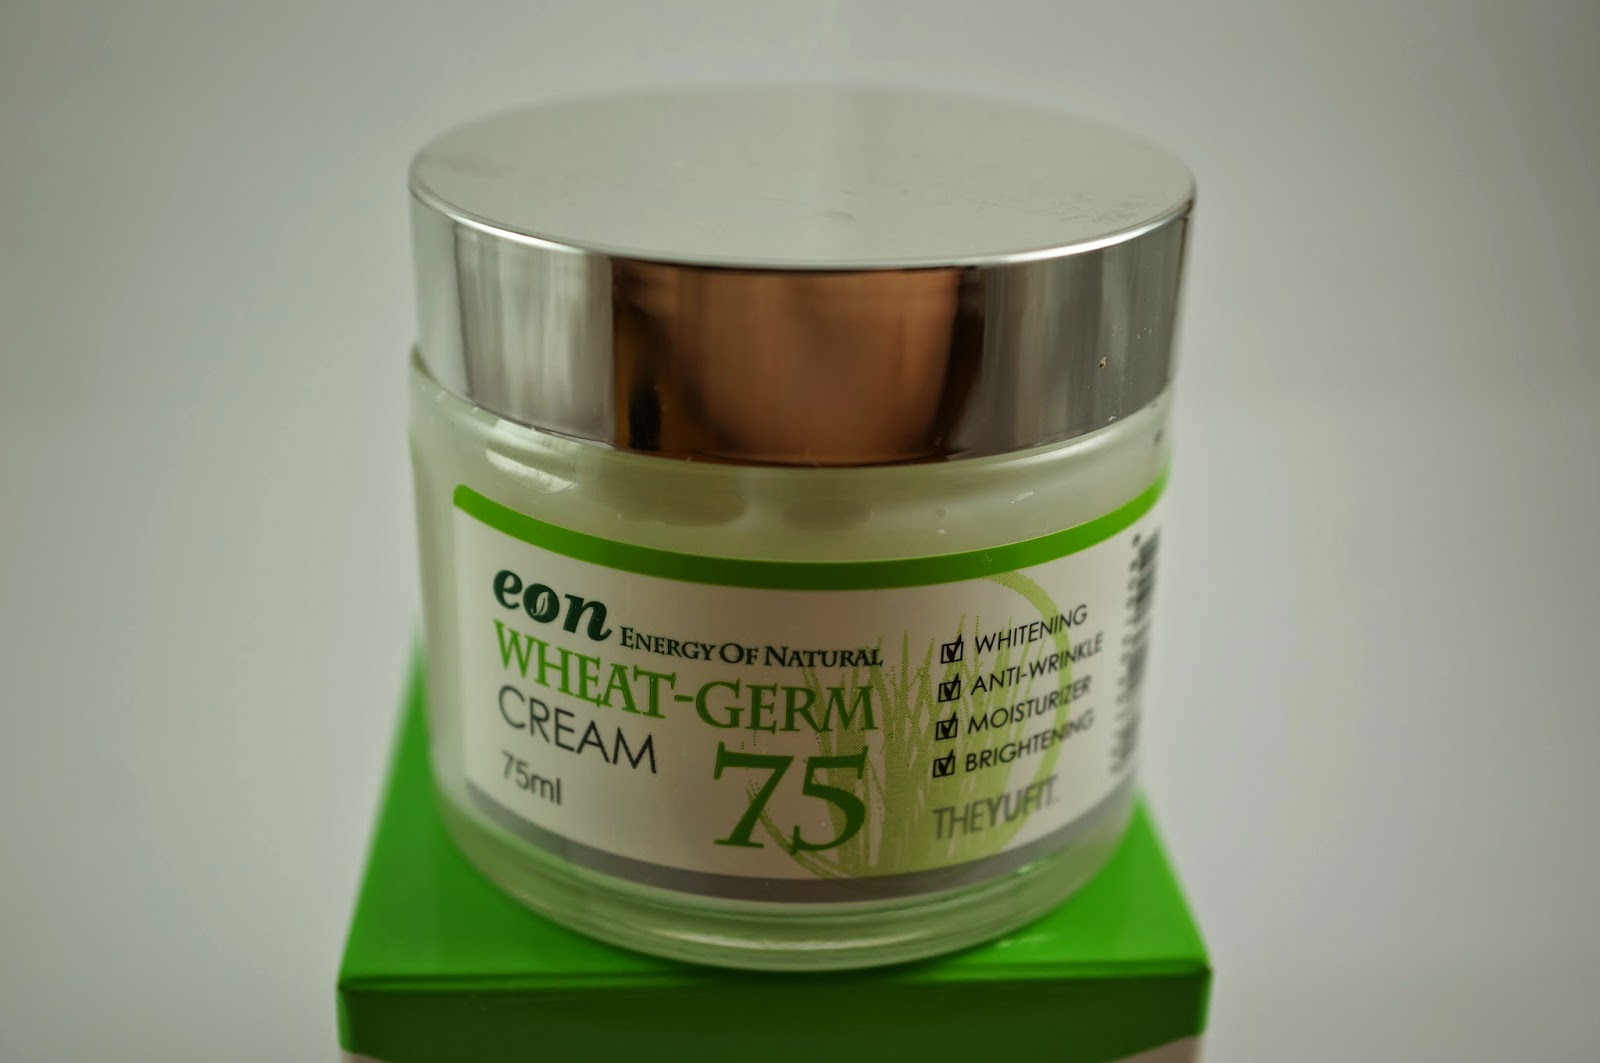 Memebox Global 13 Unboxing Review Yufit Eon Wheat Germ Cream 75